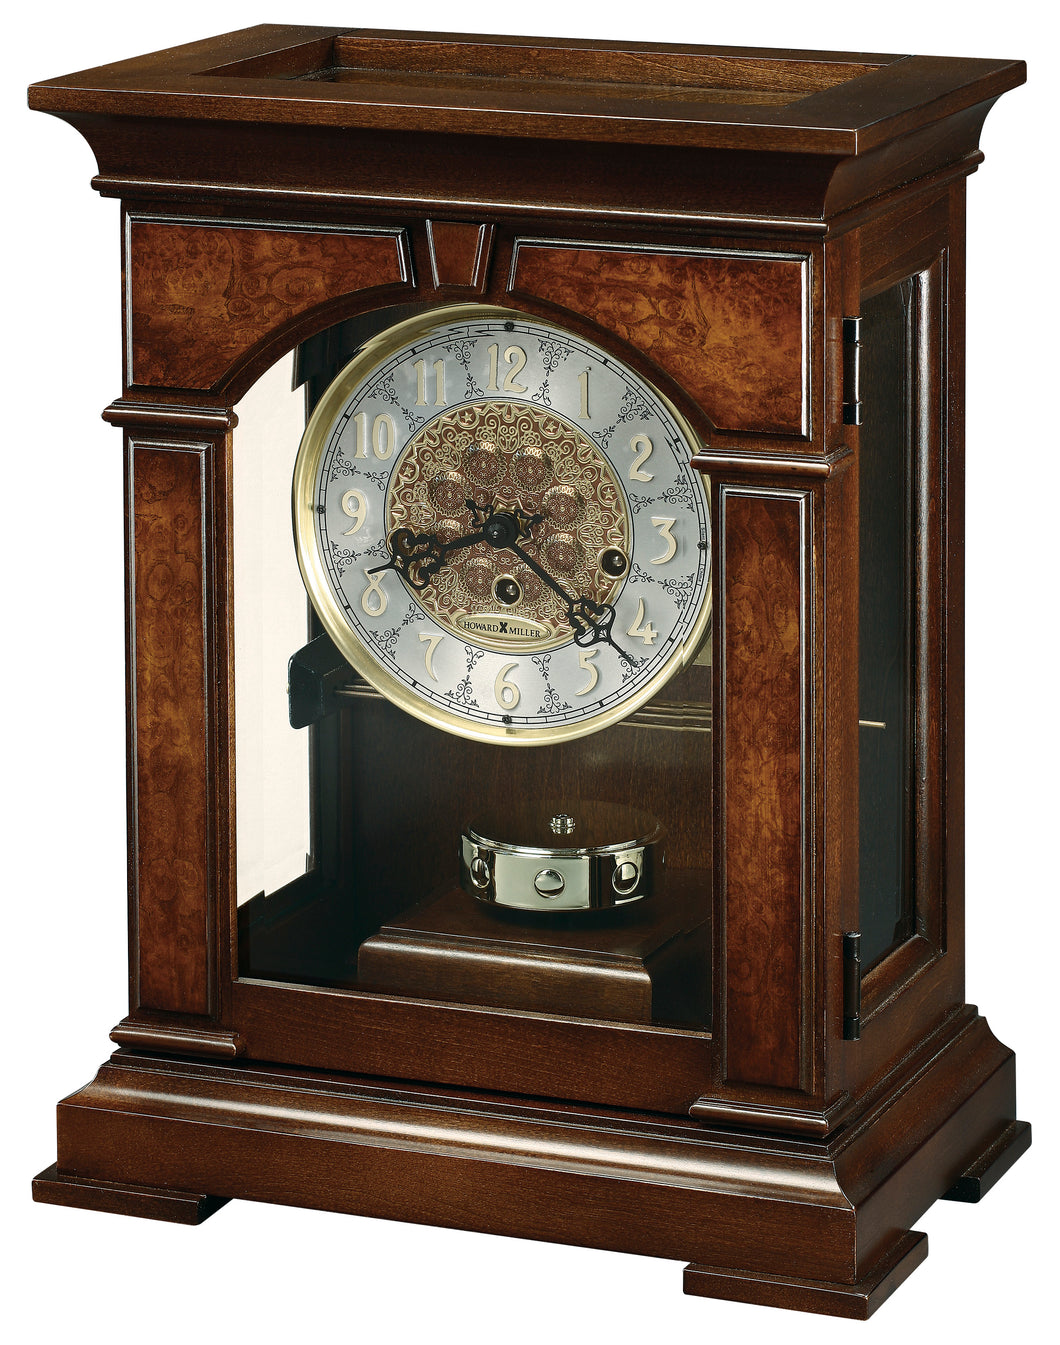 630-266_HowardMiller_Emporia_Mechanical_Mantel_Clock_WestminsterChime